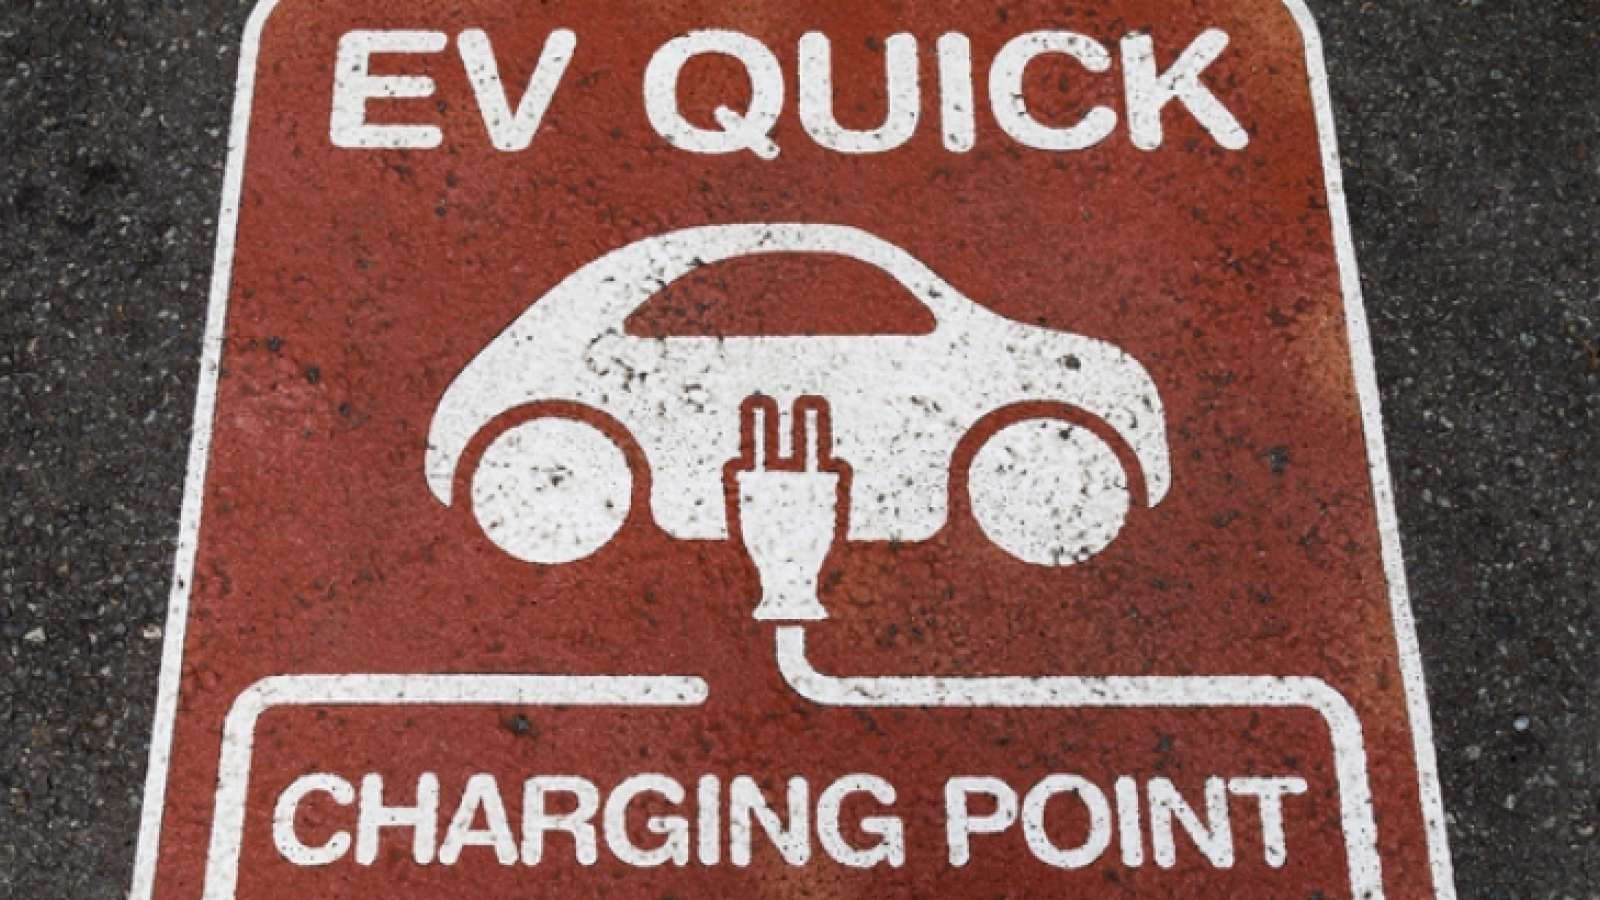 EV quick charging point parking spot